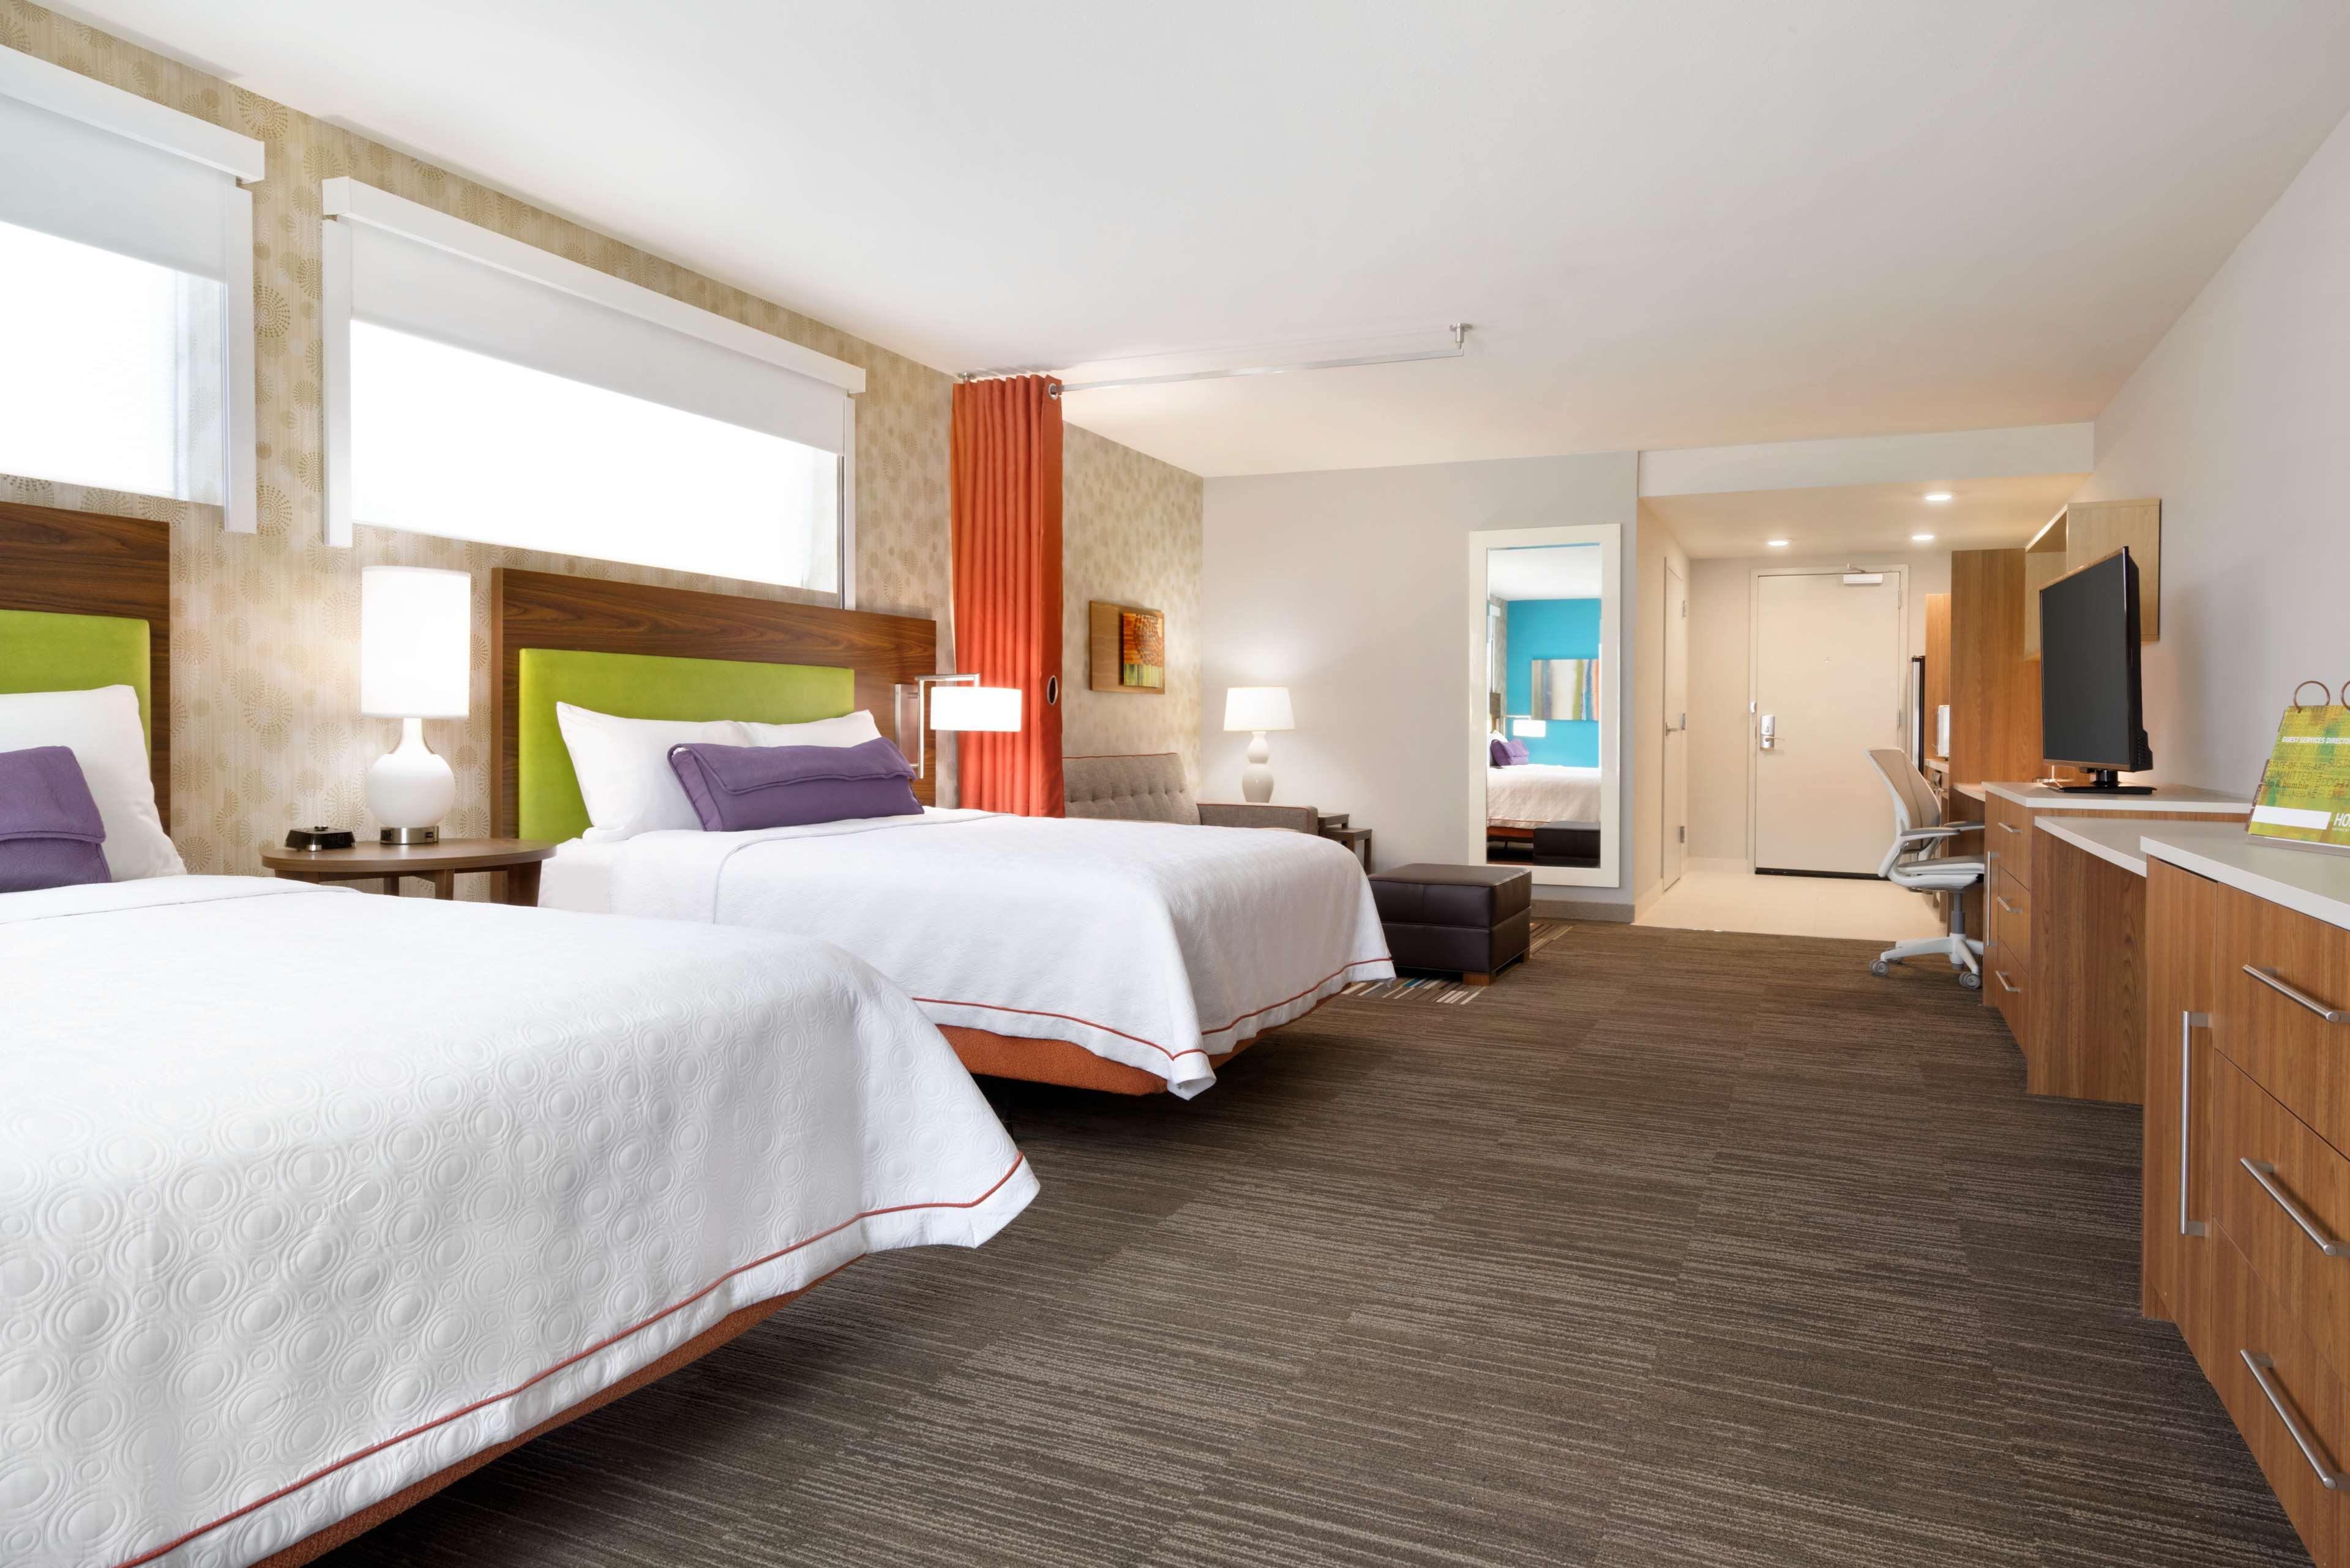 Home2 Suites by Hilton Roanoke image 19